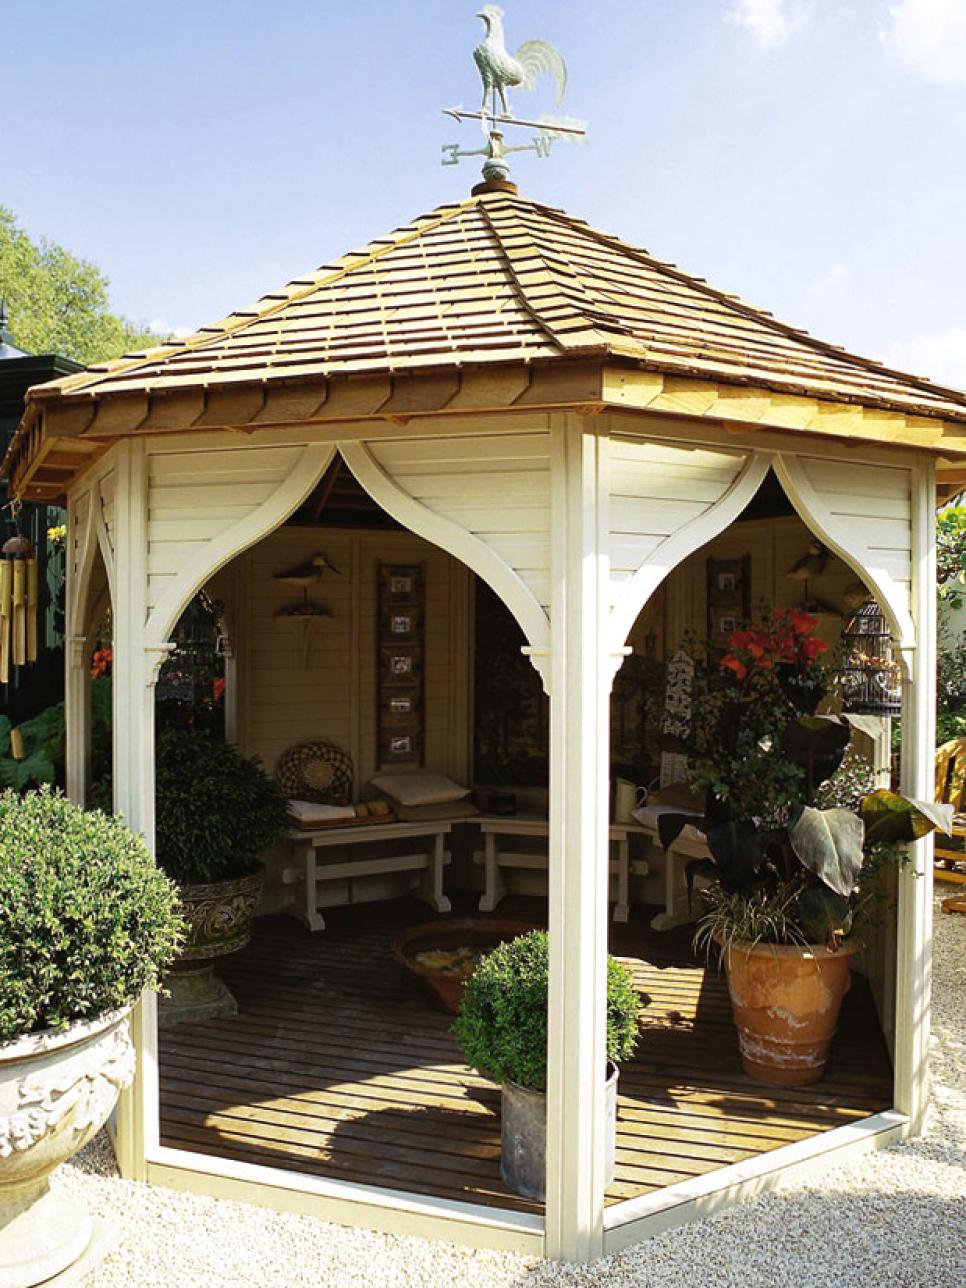 Pergola and gazebo design trends diy for Average cost to build a pavilion